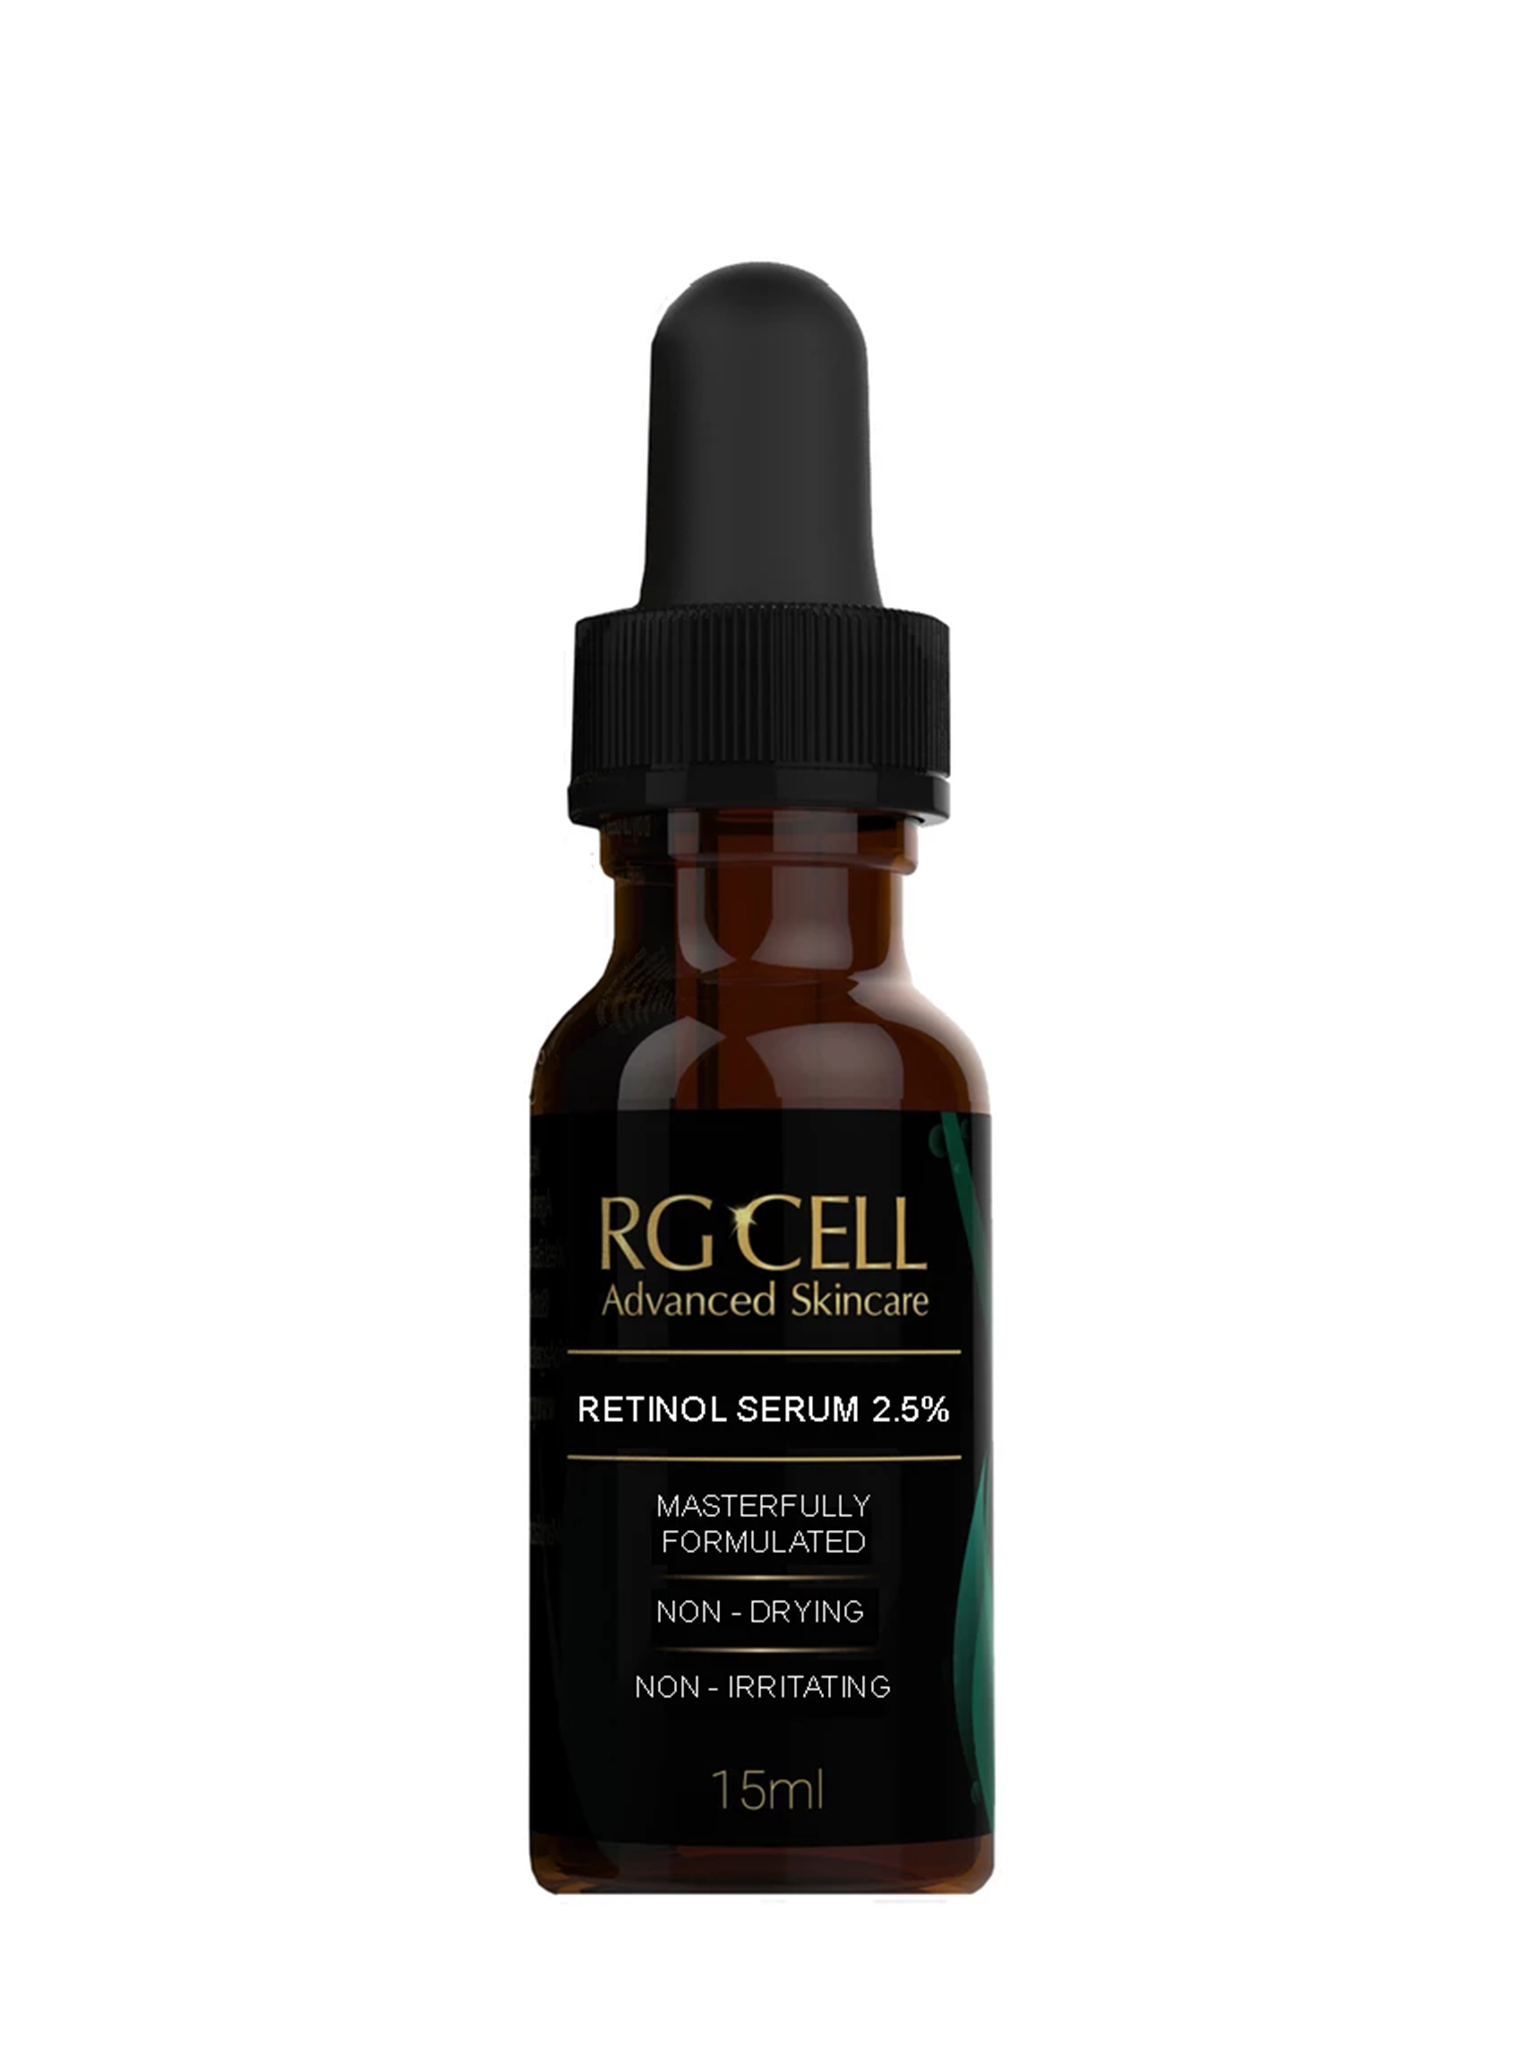 RETINOL SERUM 2.5% (Available in 15ml, 60ml, & 120ml)